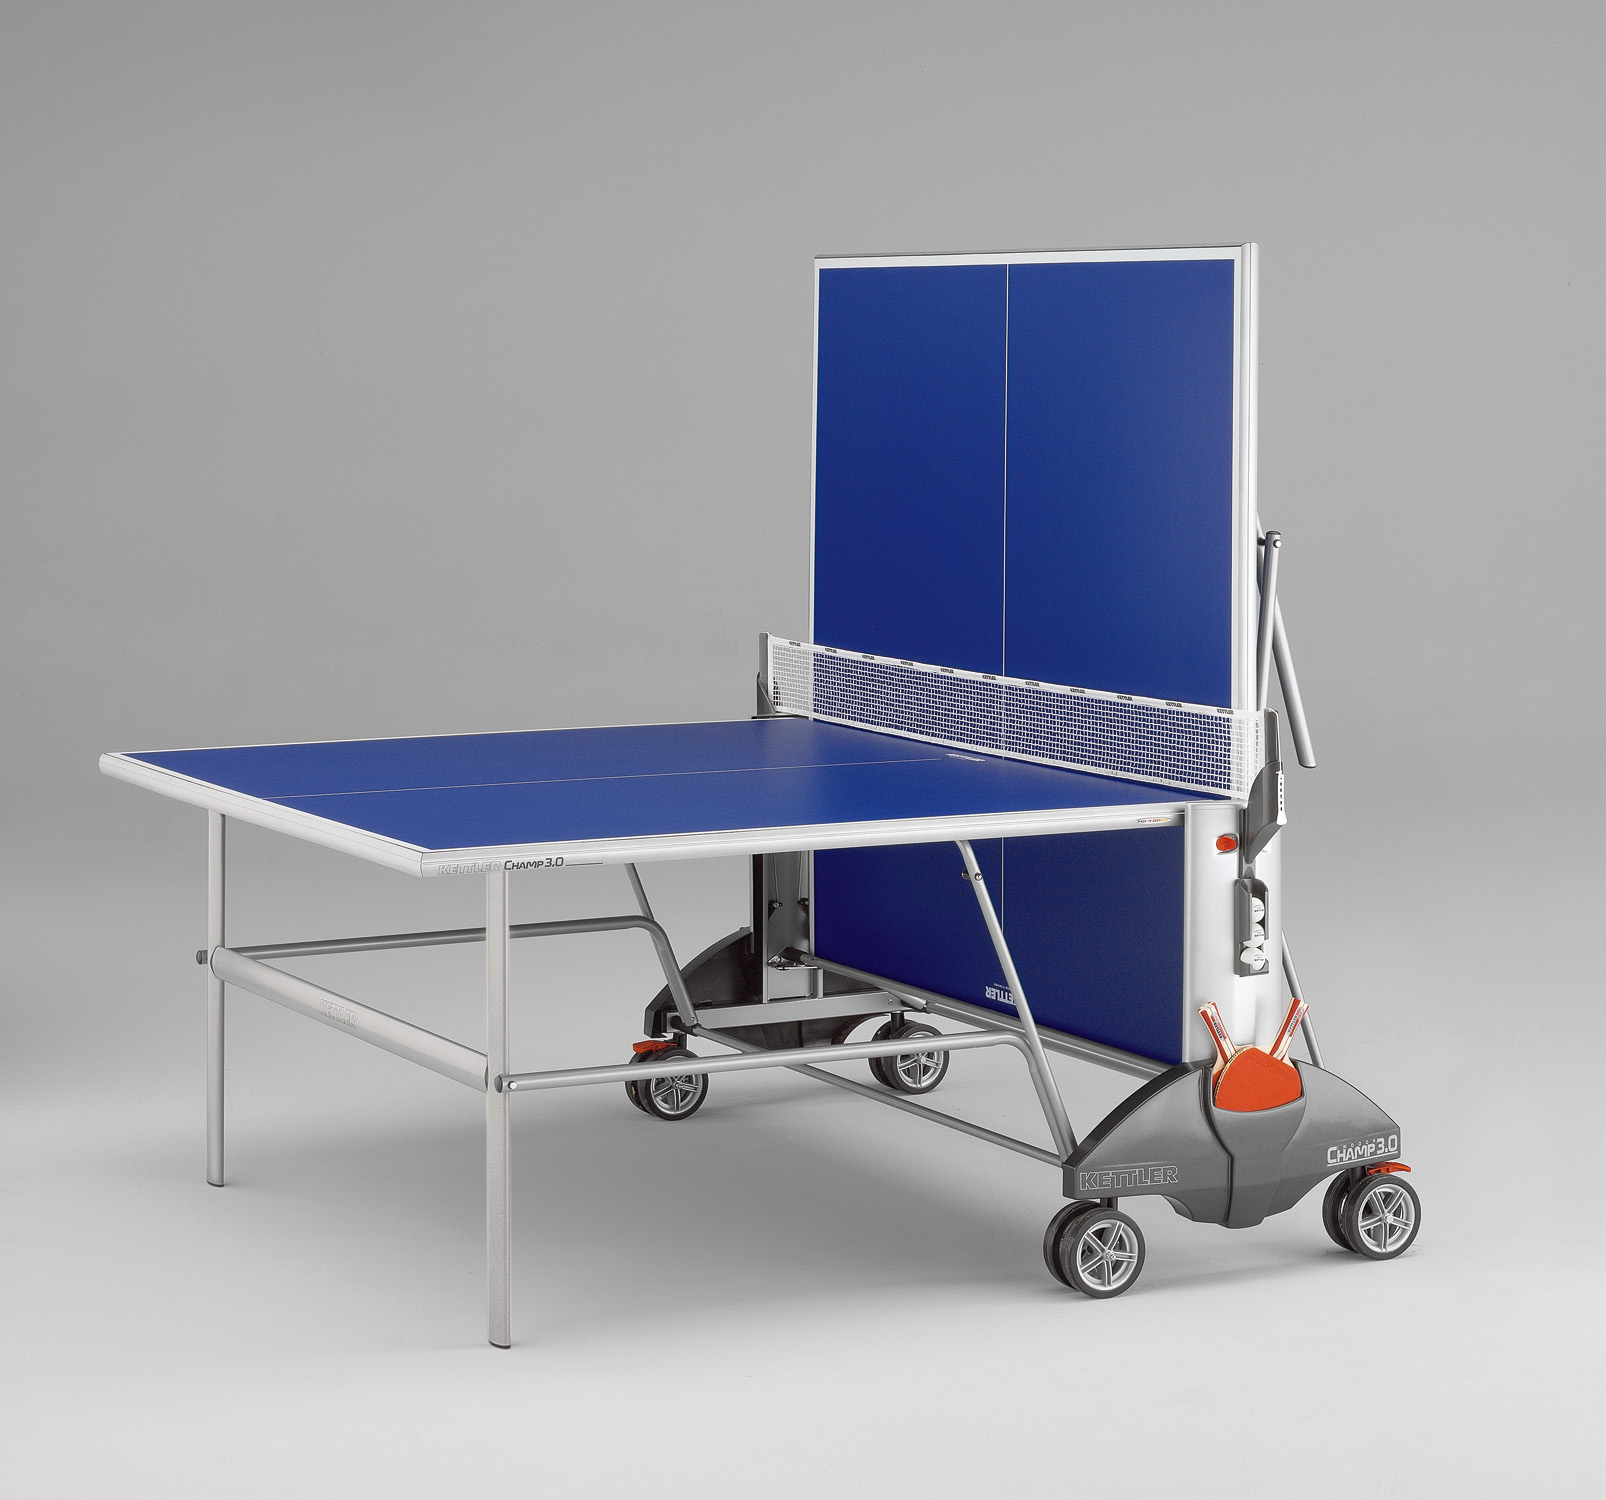 Kettler champ 3 0 indoor best outdoor ping pong tables for Table kettler